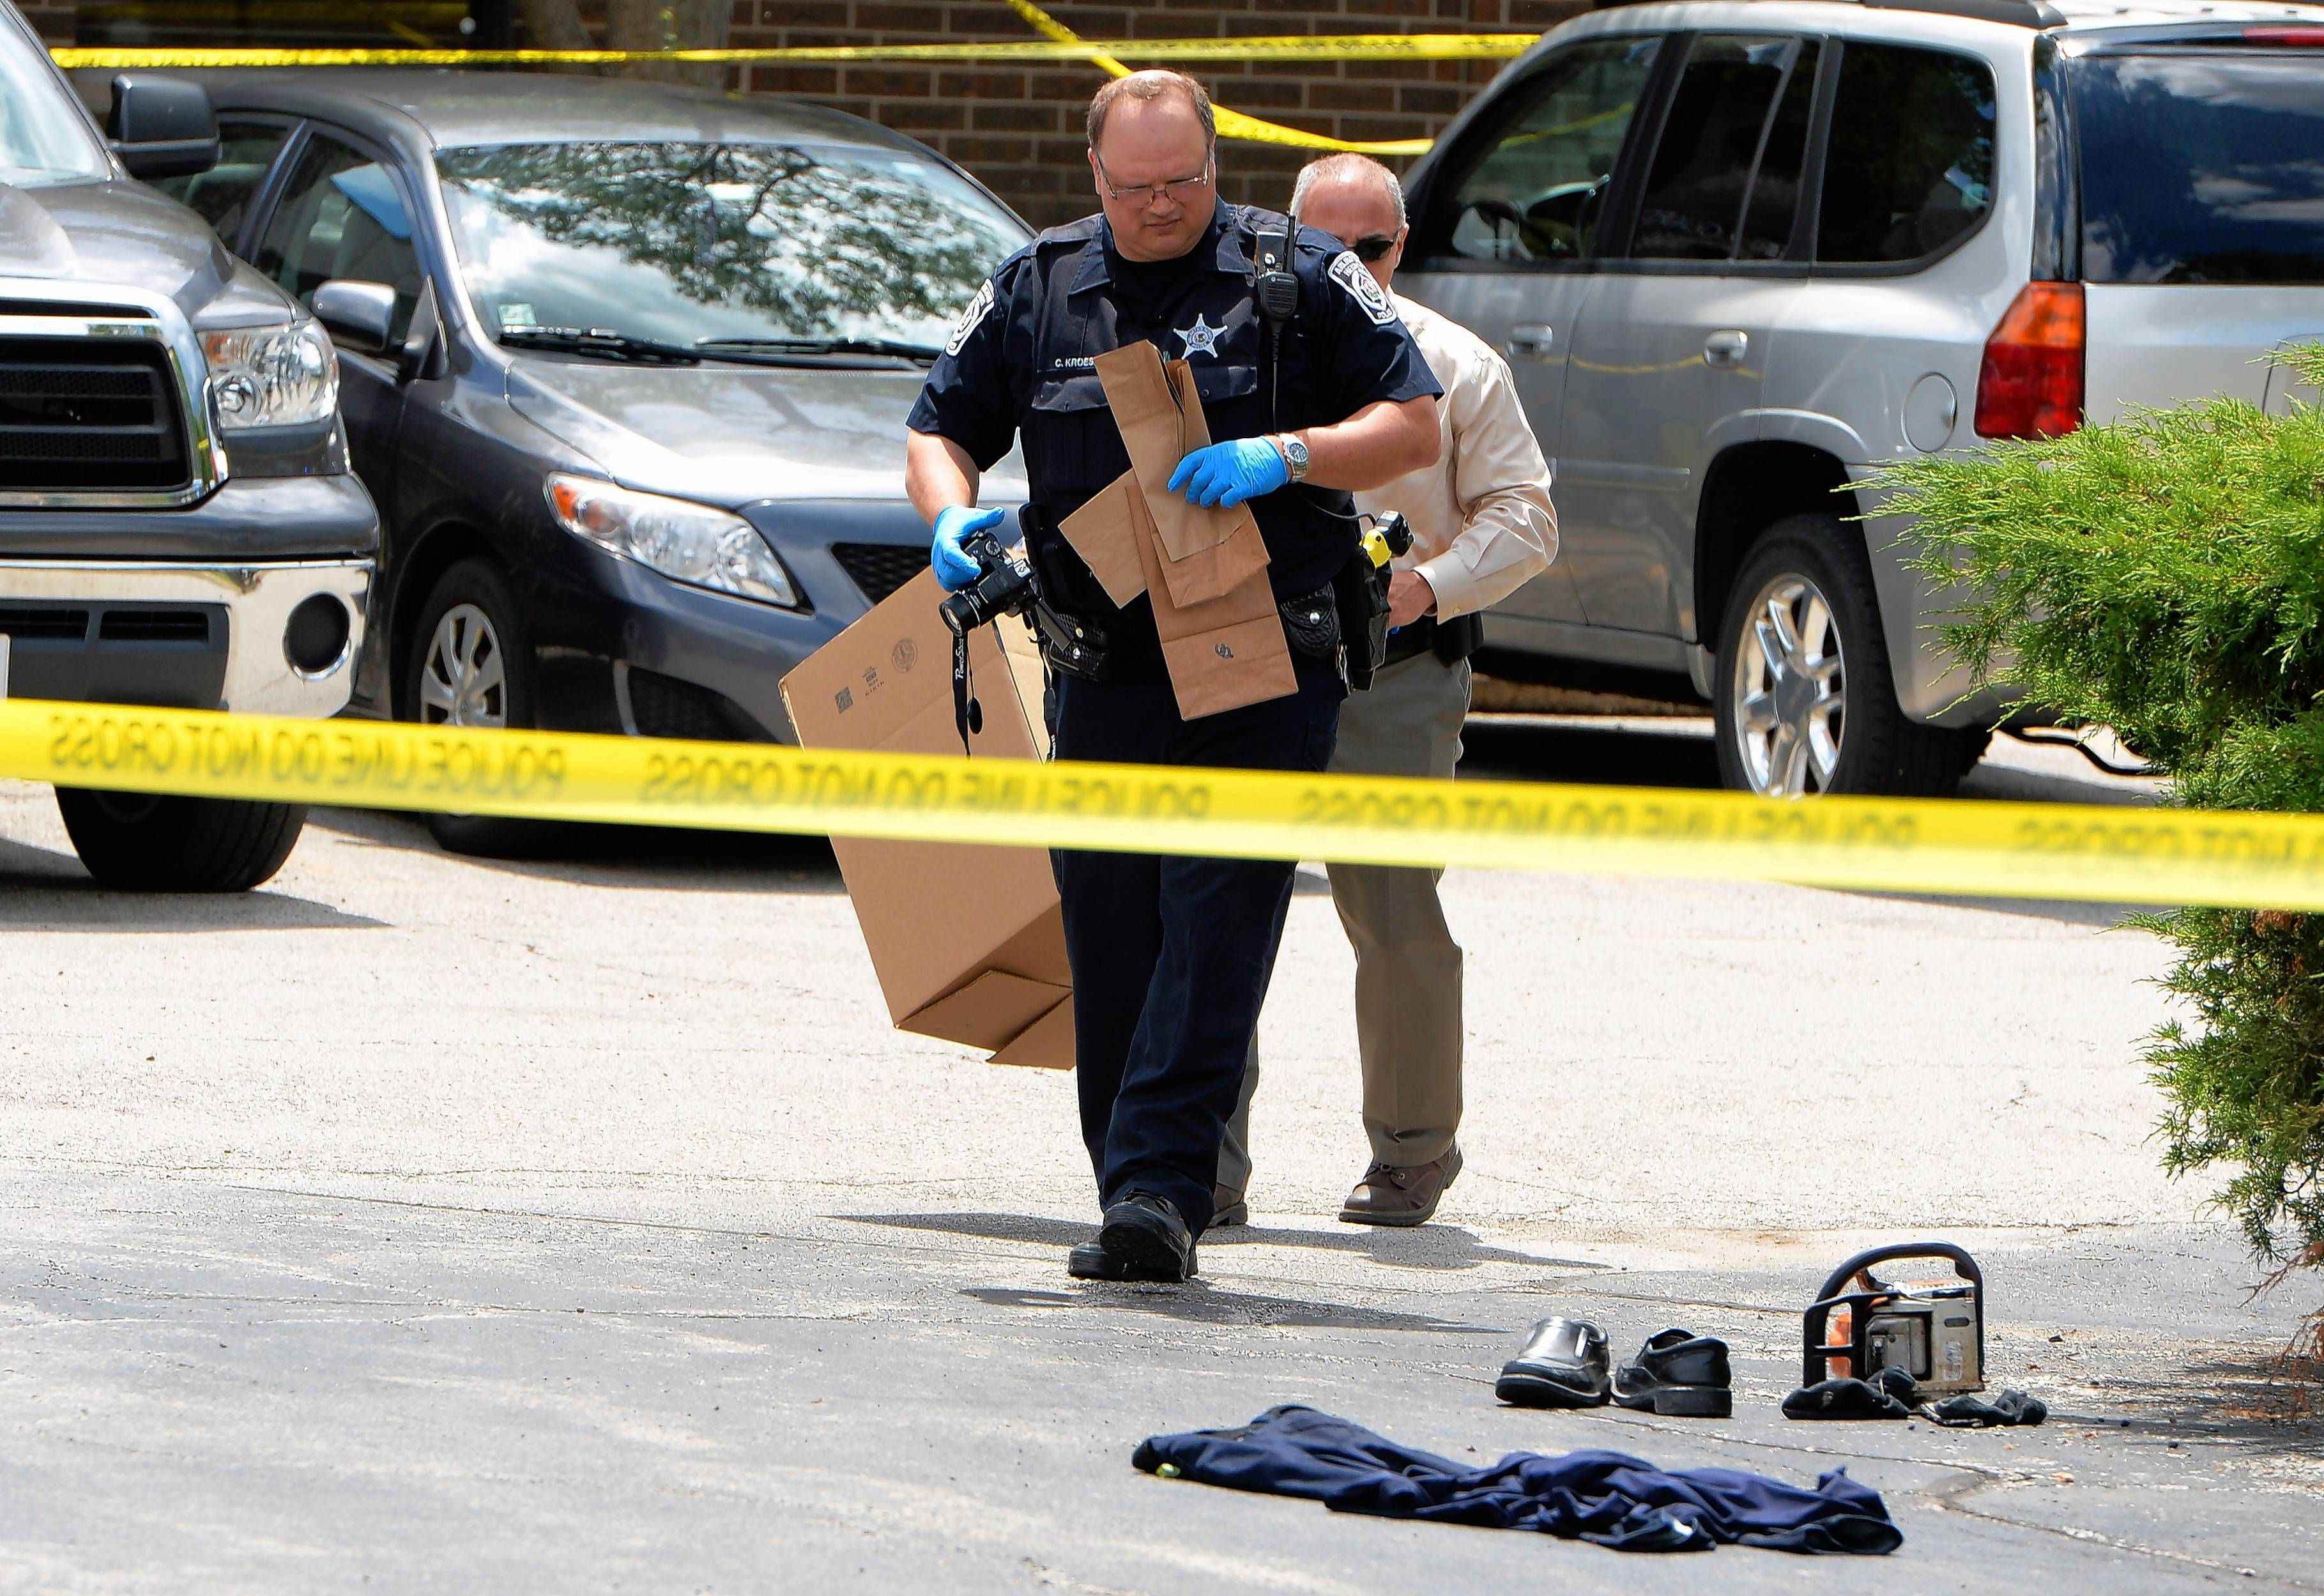 911 tapes reveal frantic scene of Arlington Heights chain saw attack